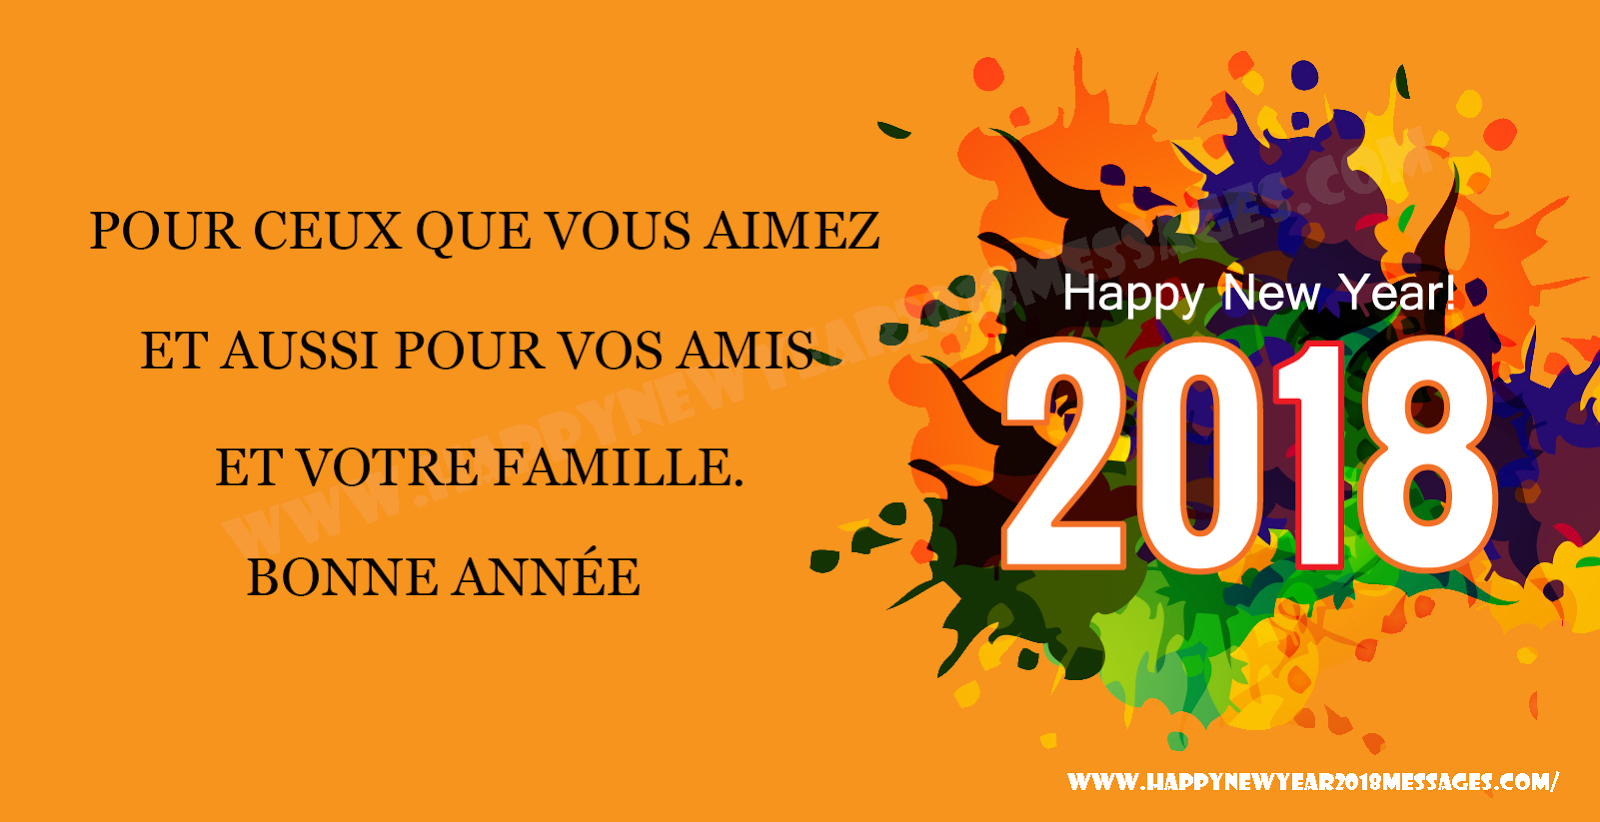 new year 2018 advance greetings messages quotes in french